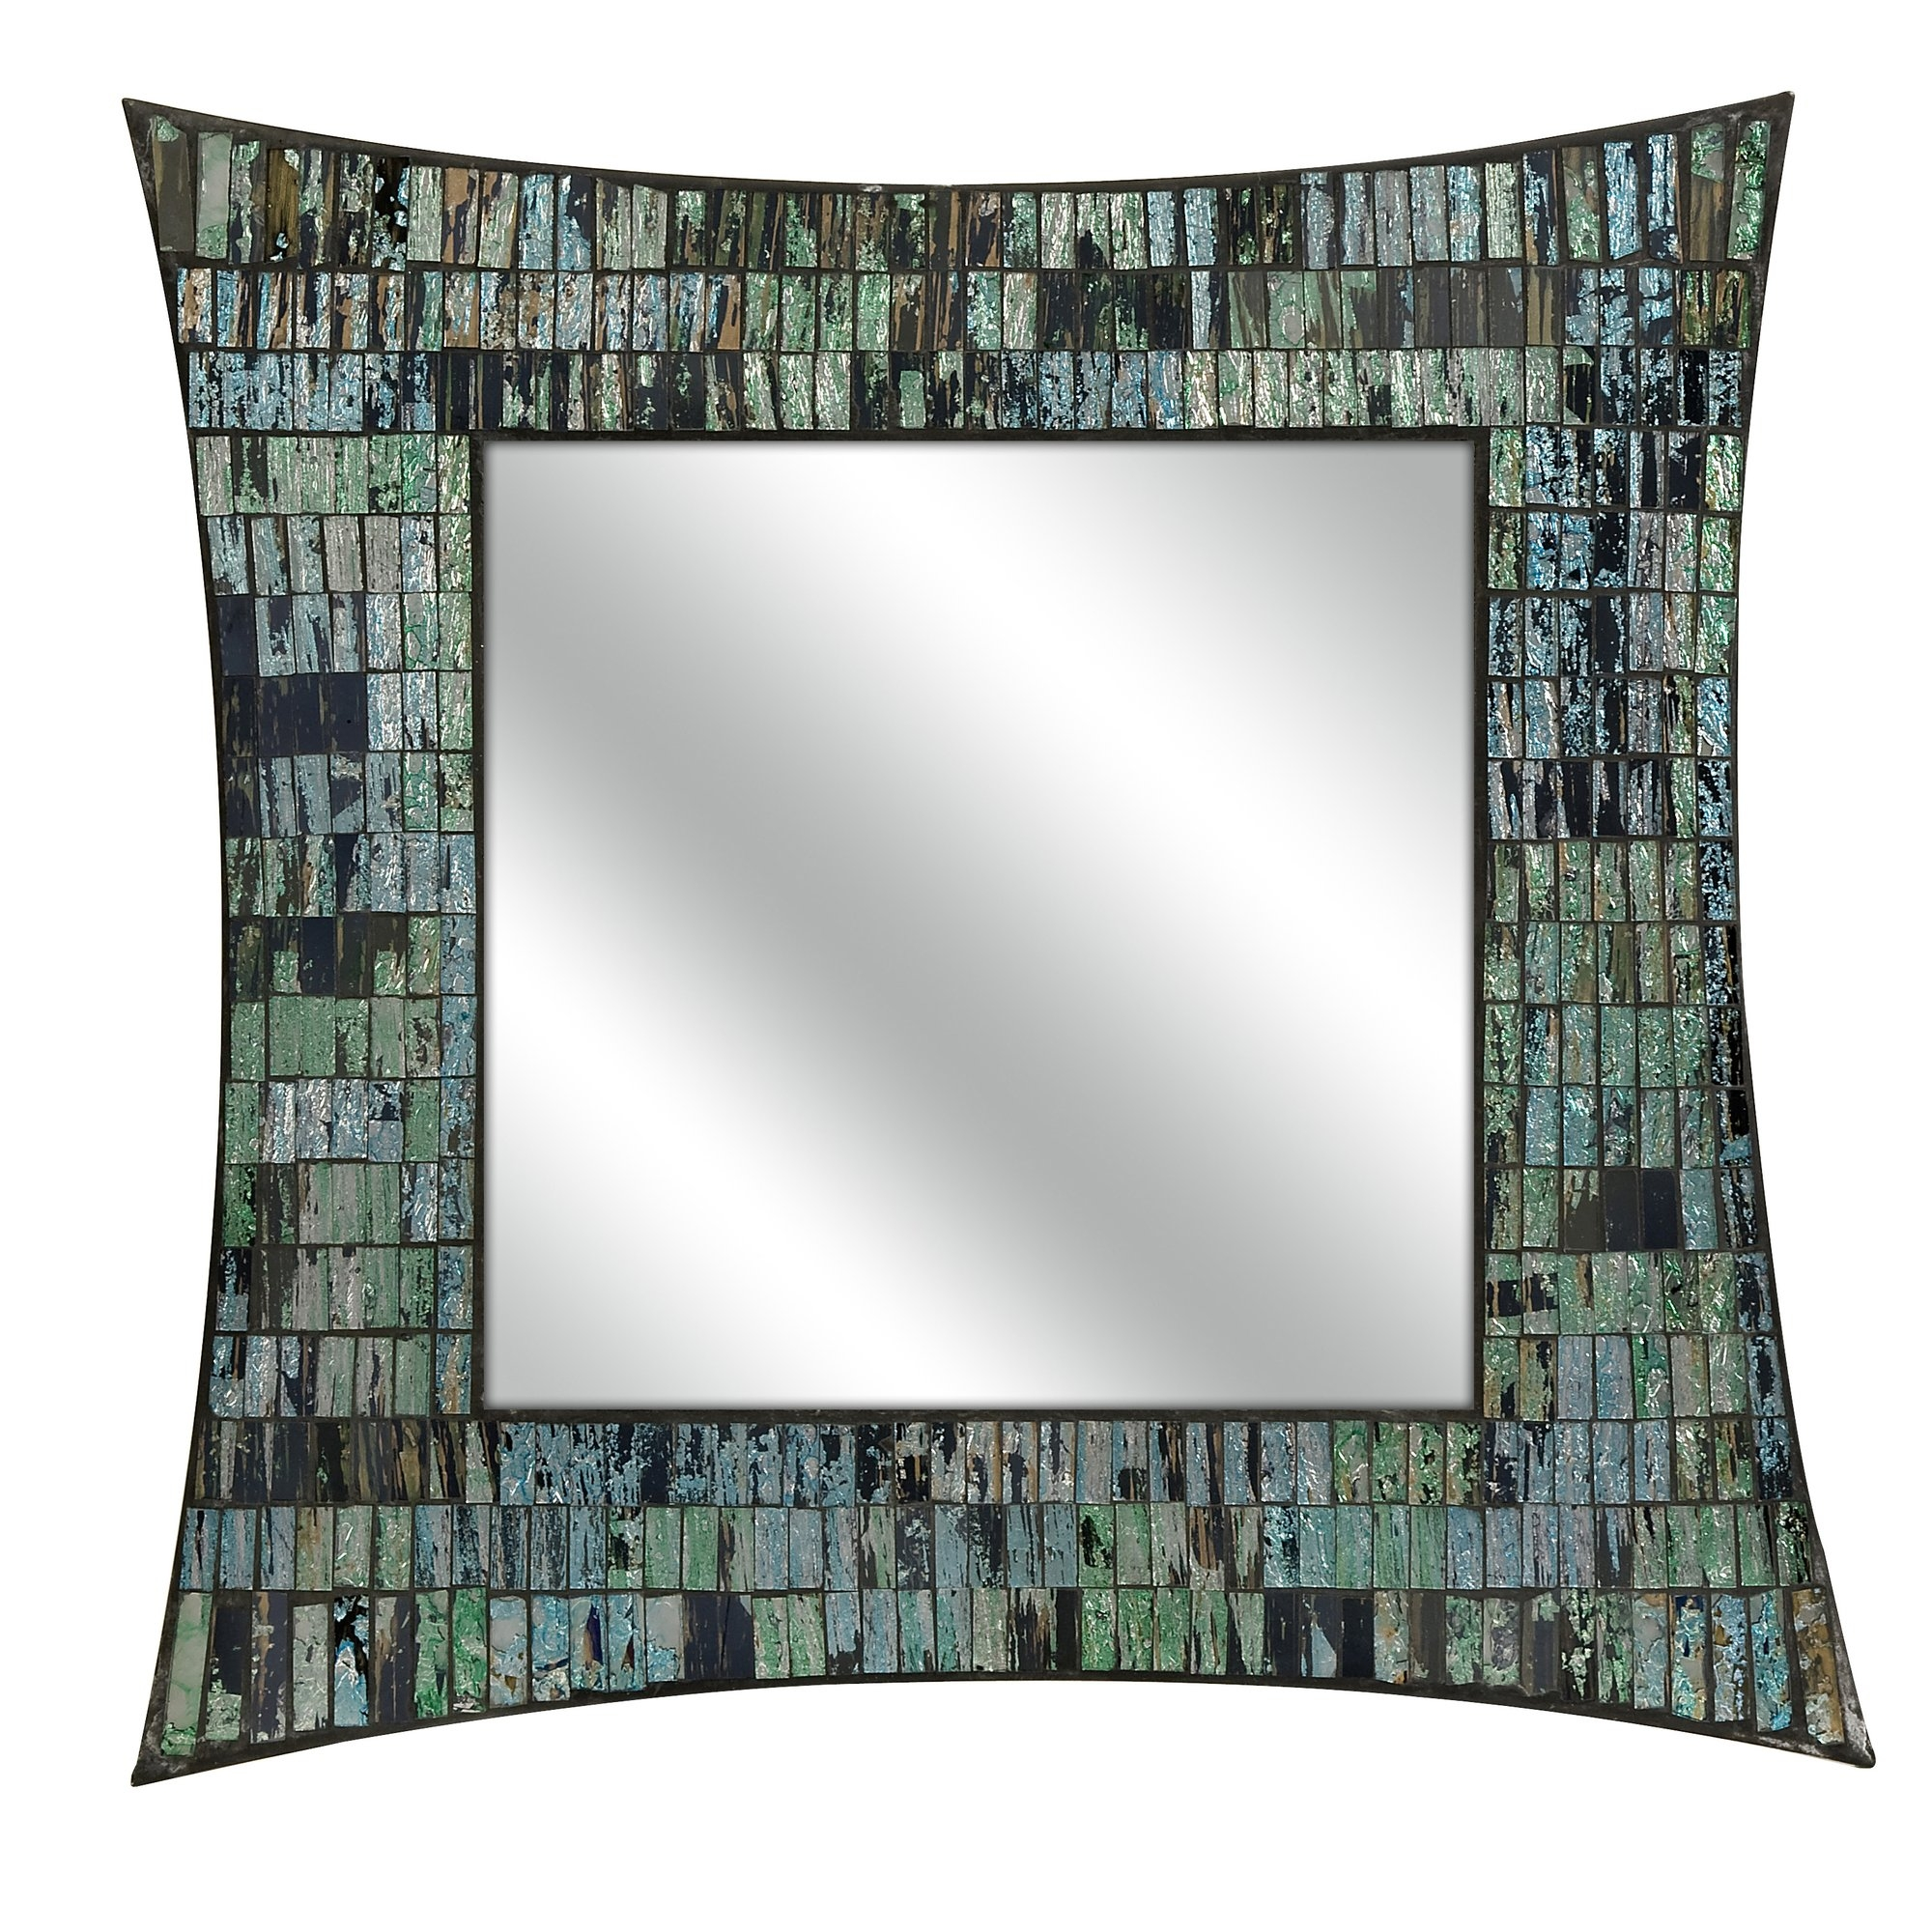 Imax Aramis Mosaic Wall Mirror Reviews Wayfair Within Mosaic Wall Mirror (View 3 of 15)